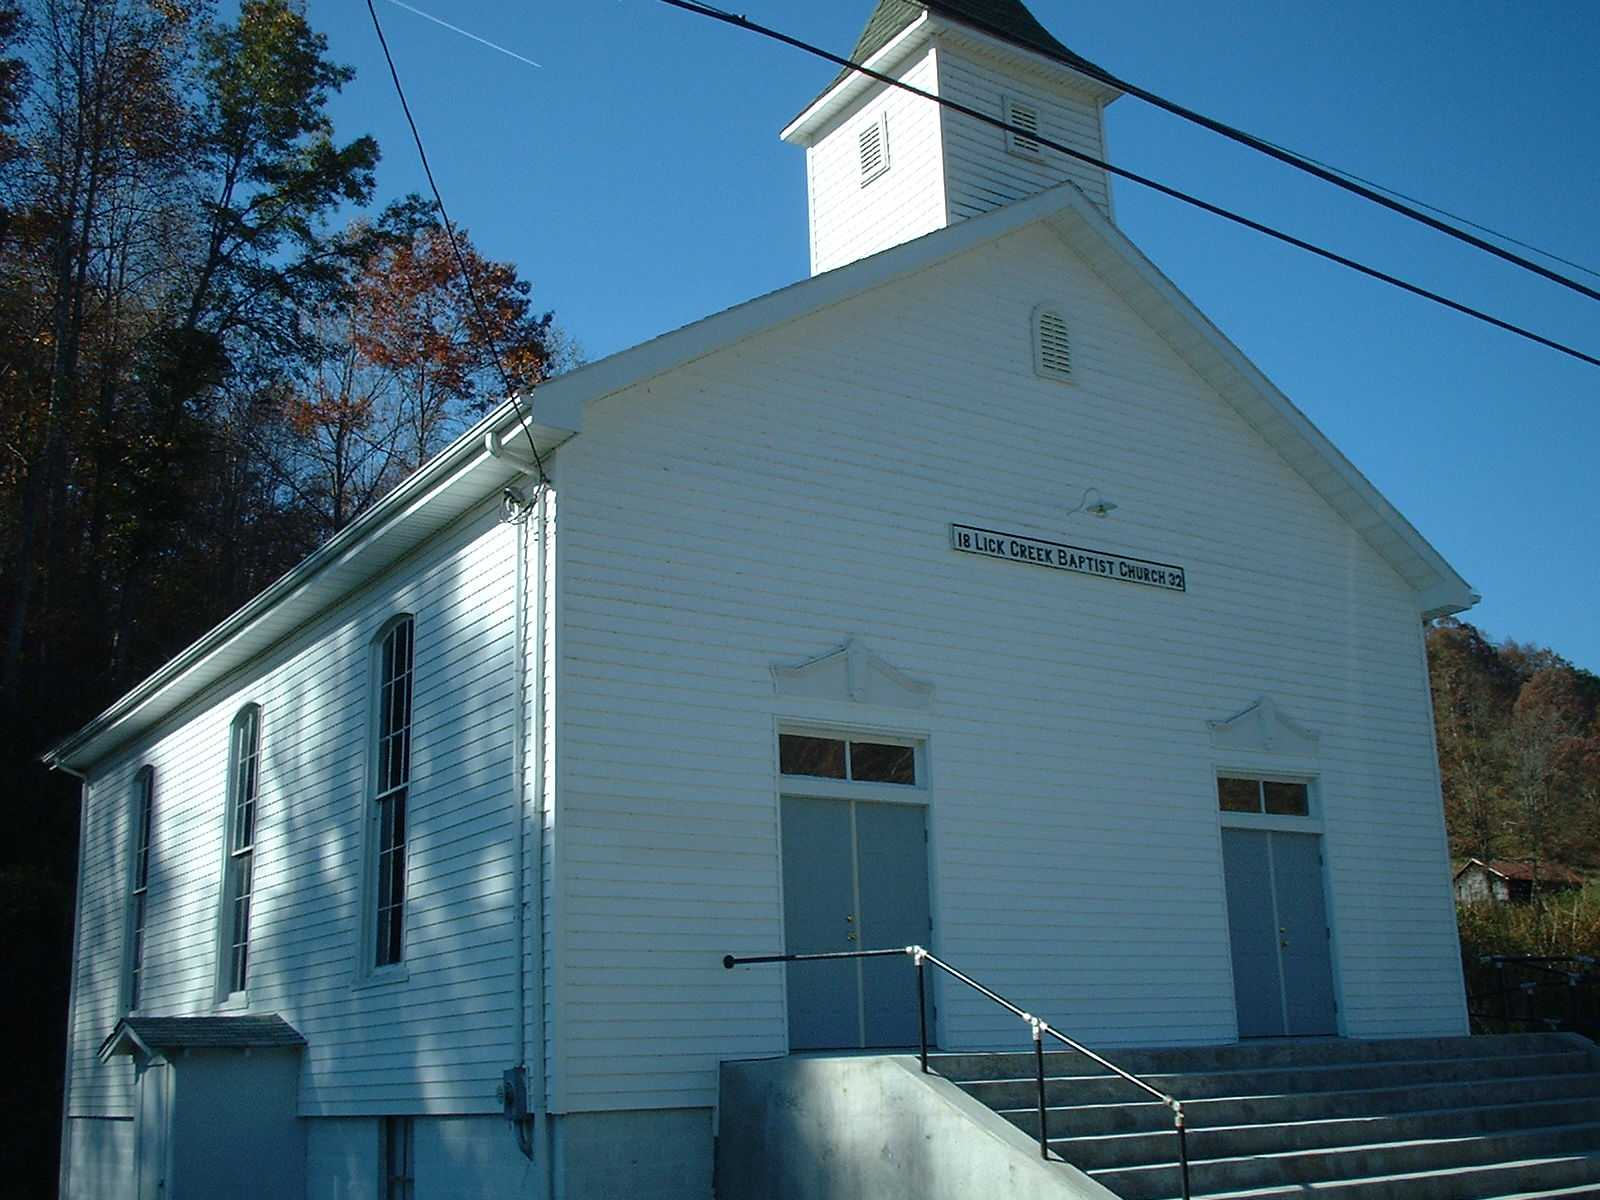 Lick creek baptist church